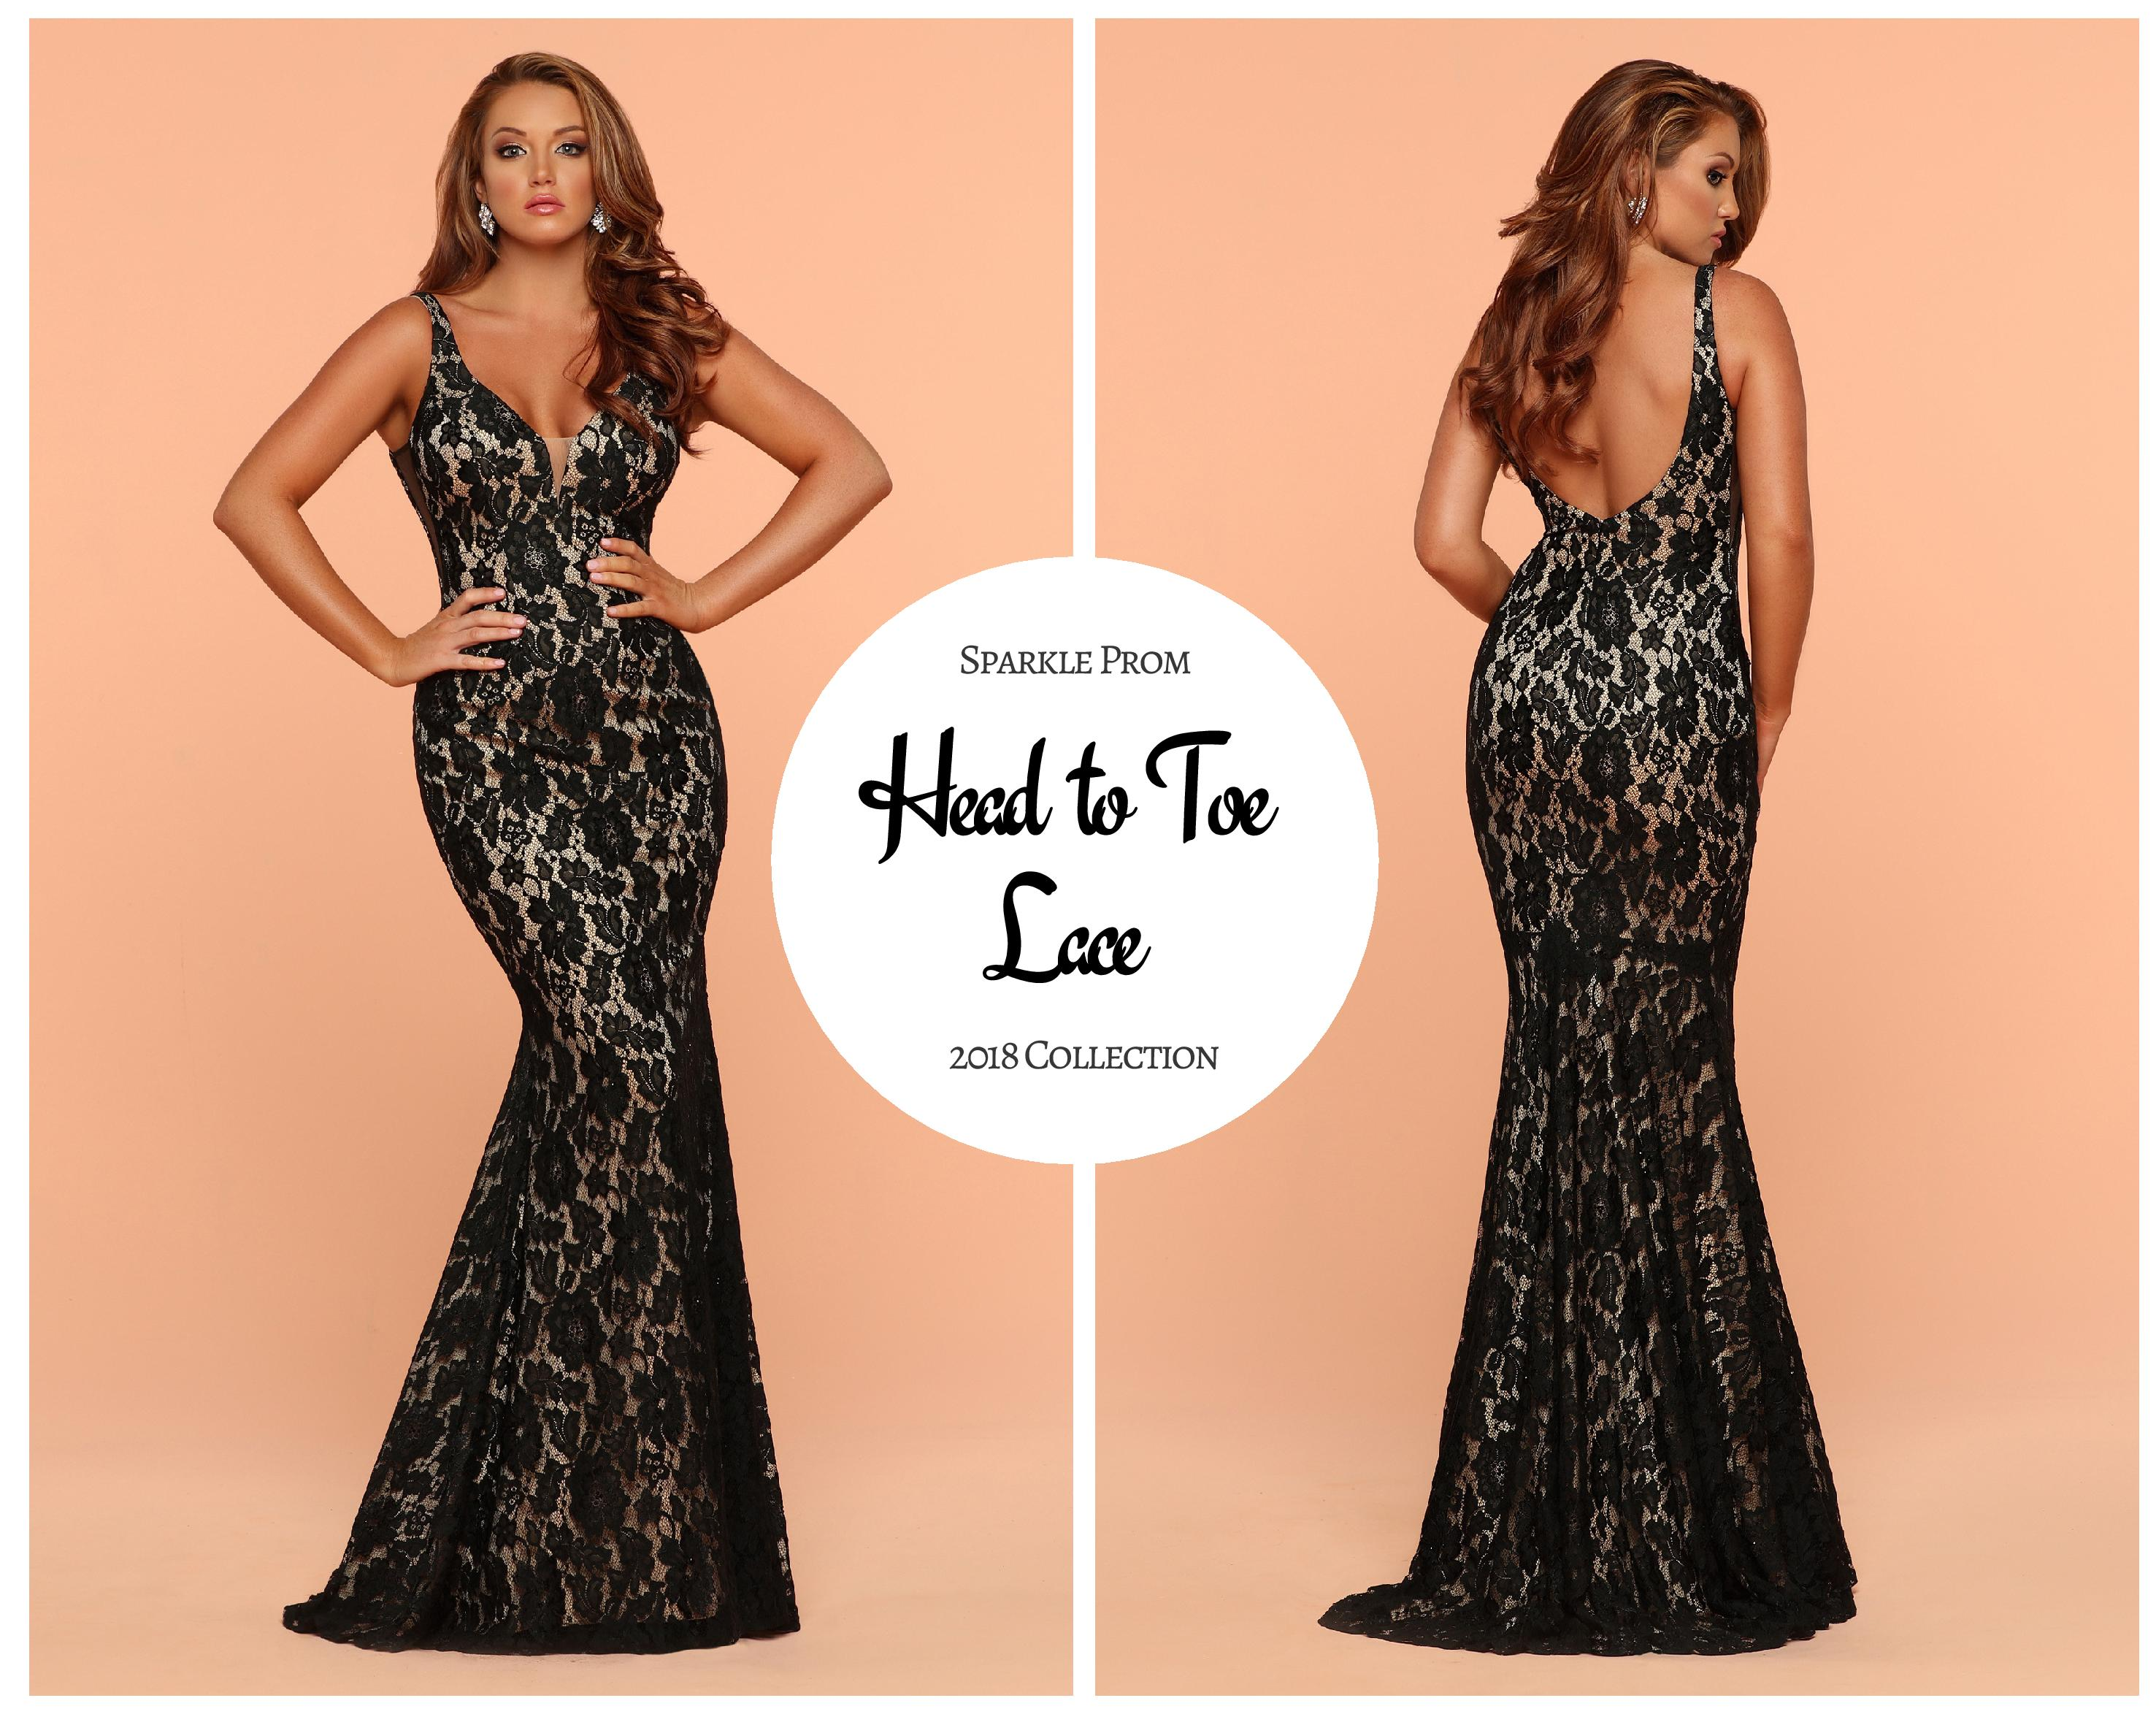 NEW! 2018 Sparkle Prom Collection: Head-to-Toe Lace Prom Gowns